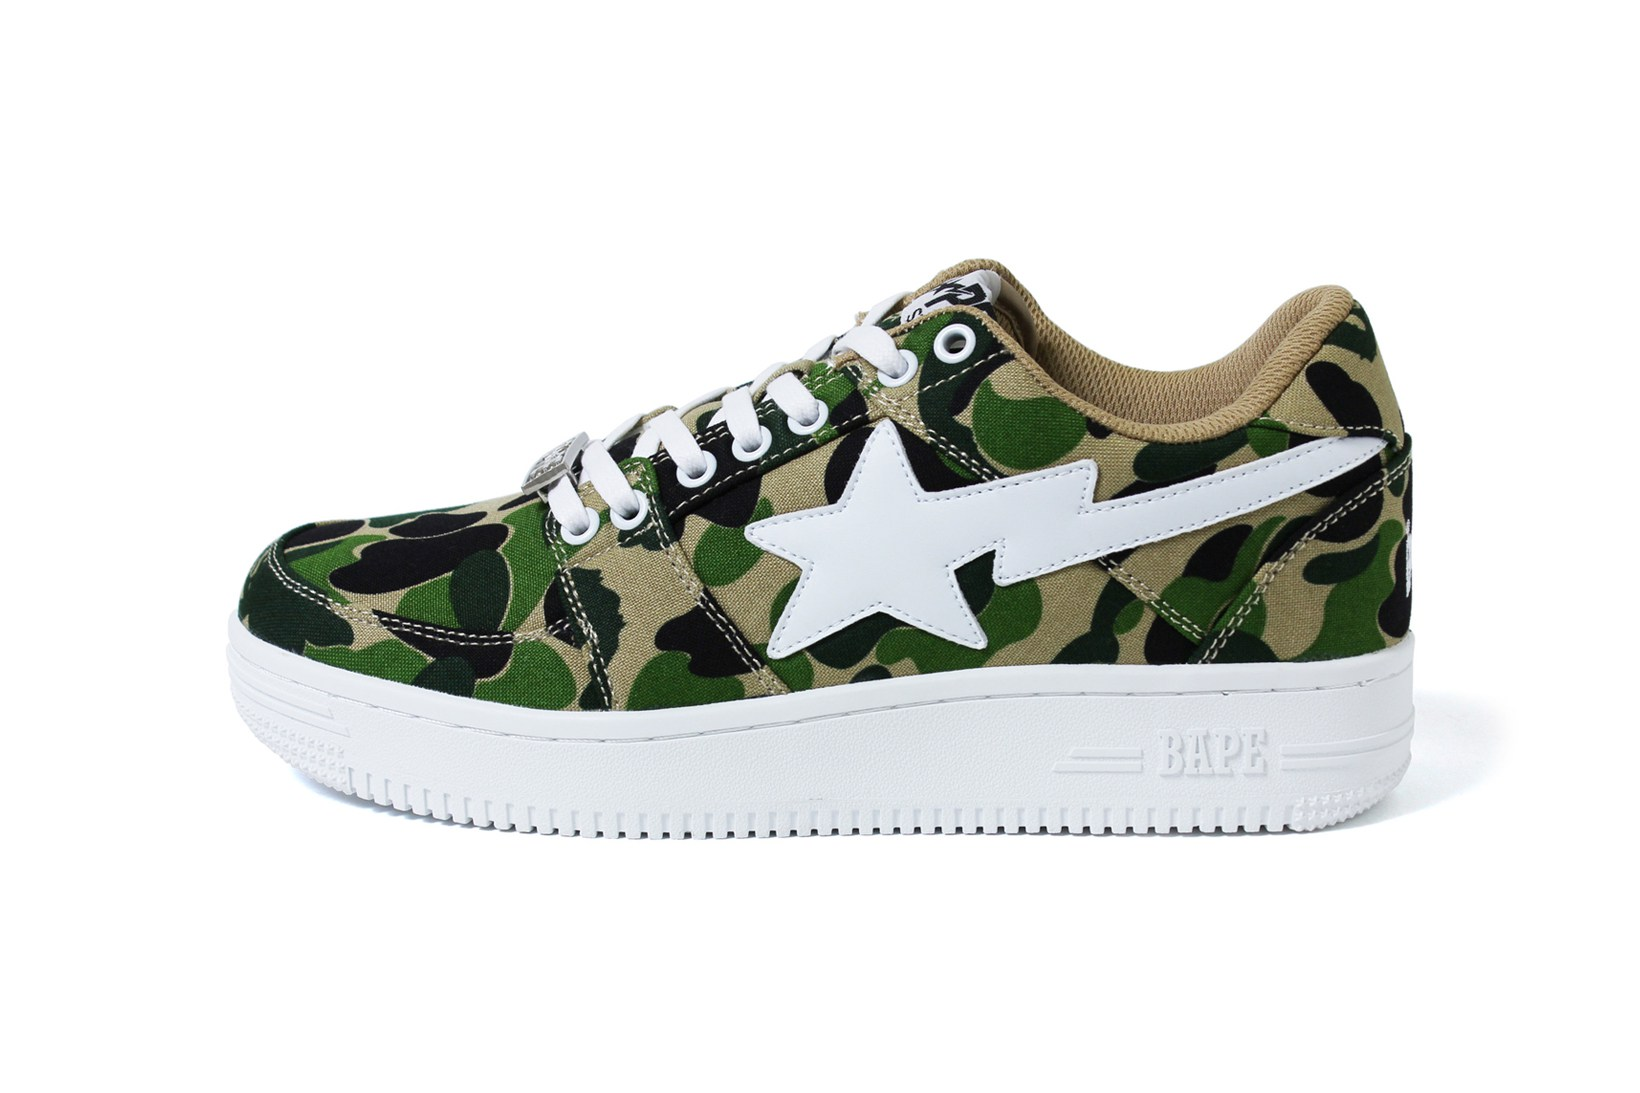 Bape Shoes Price | Bapesta | Goyard Shoes